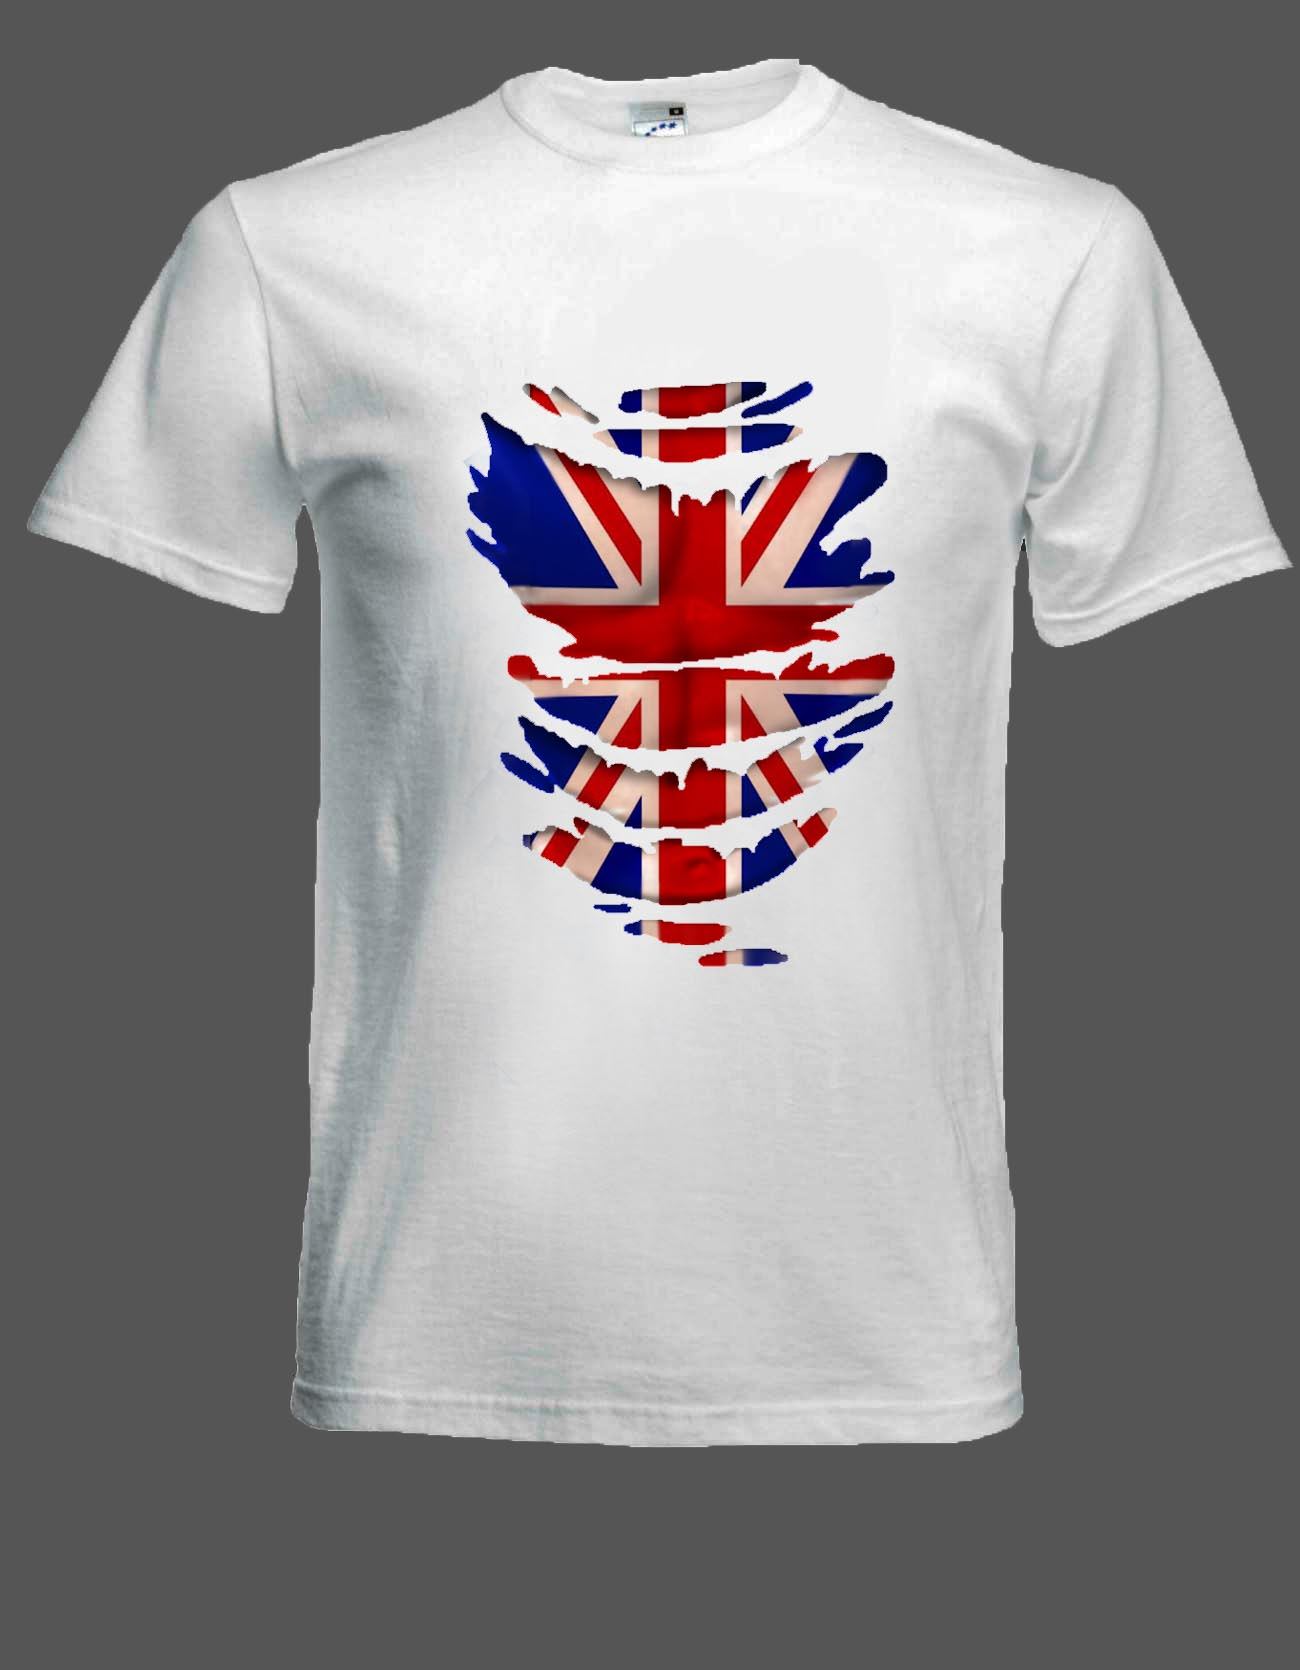 Union Jack Flag T Shirt Muscles Through Ripped Tee Shirt